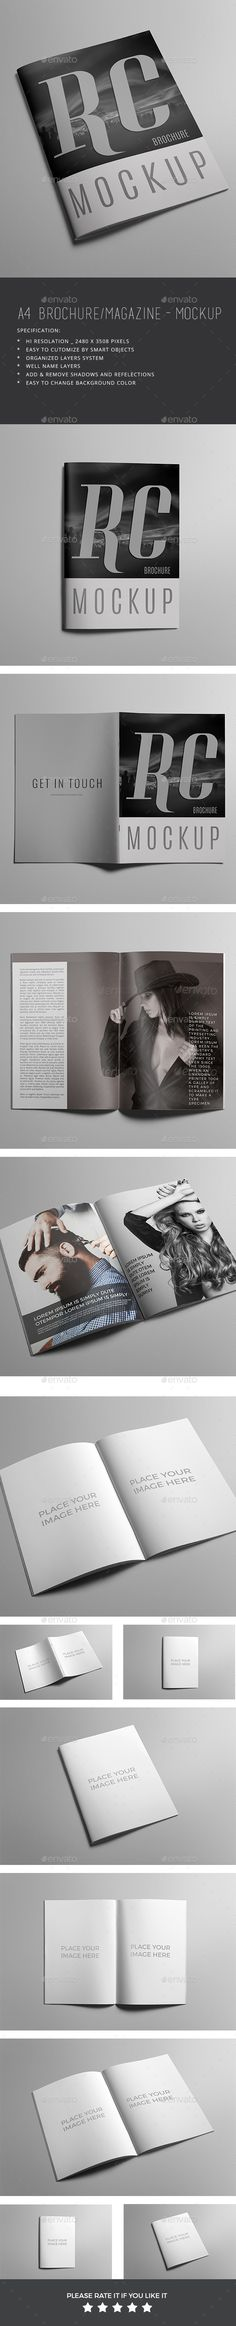 Magazine / Brochure Mockup. Download here: http://graphicriver.net/item/magazine-brochure-mockup/15204214?ref=ksioks